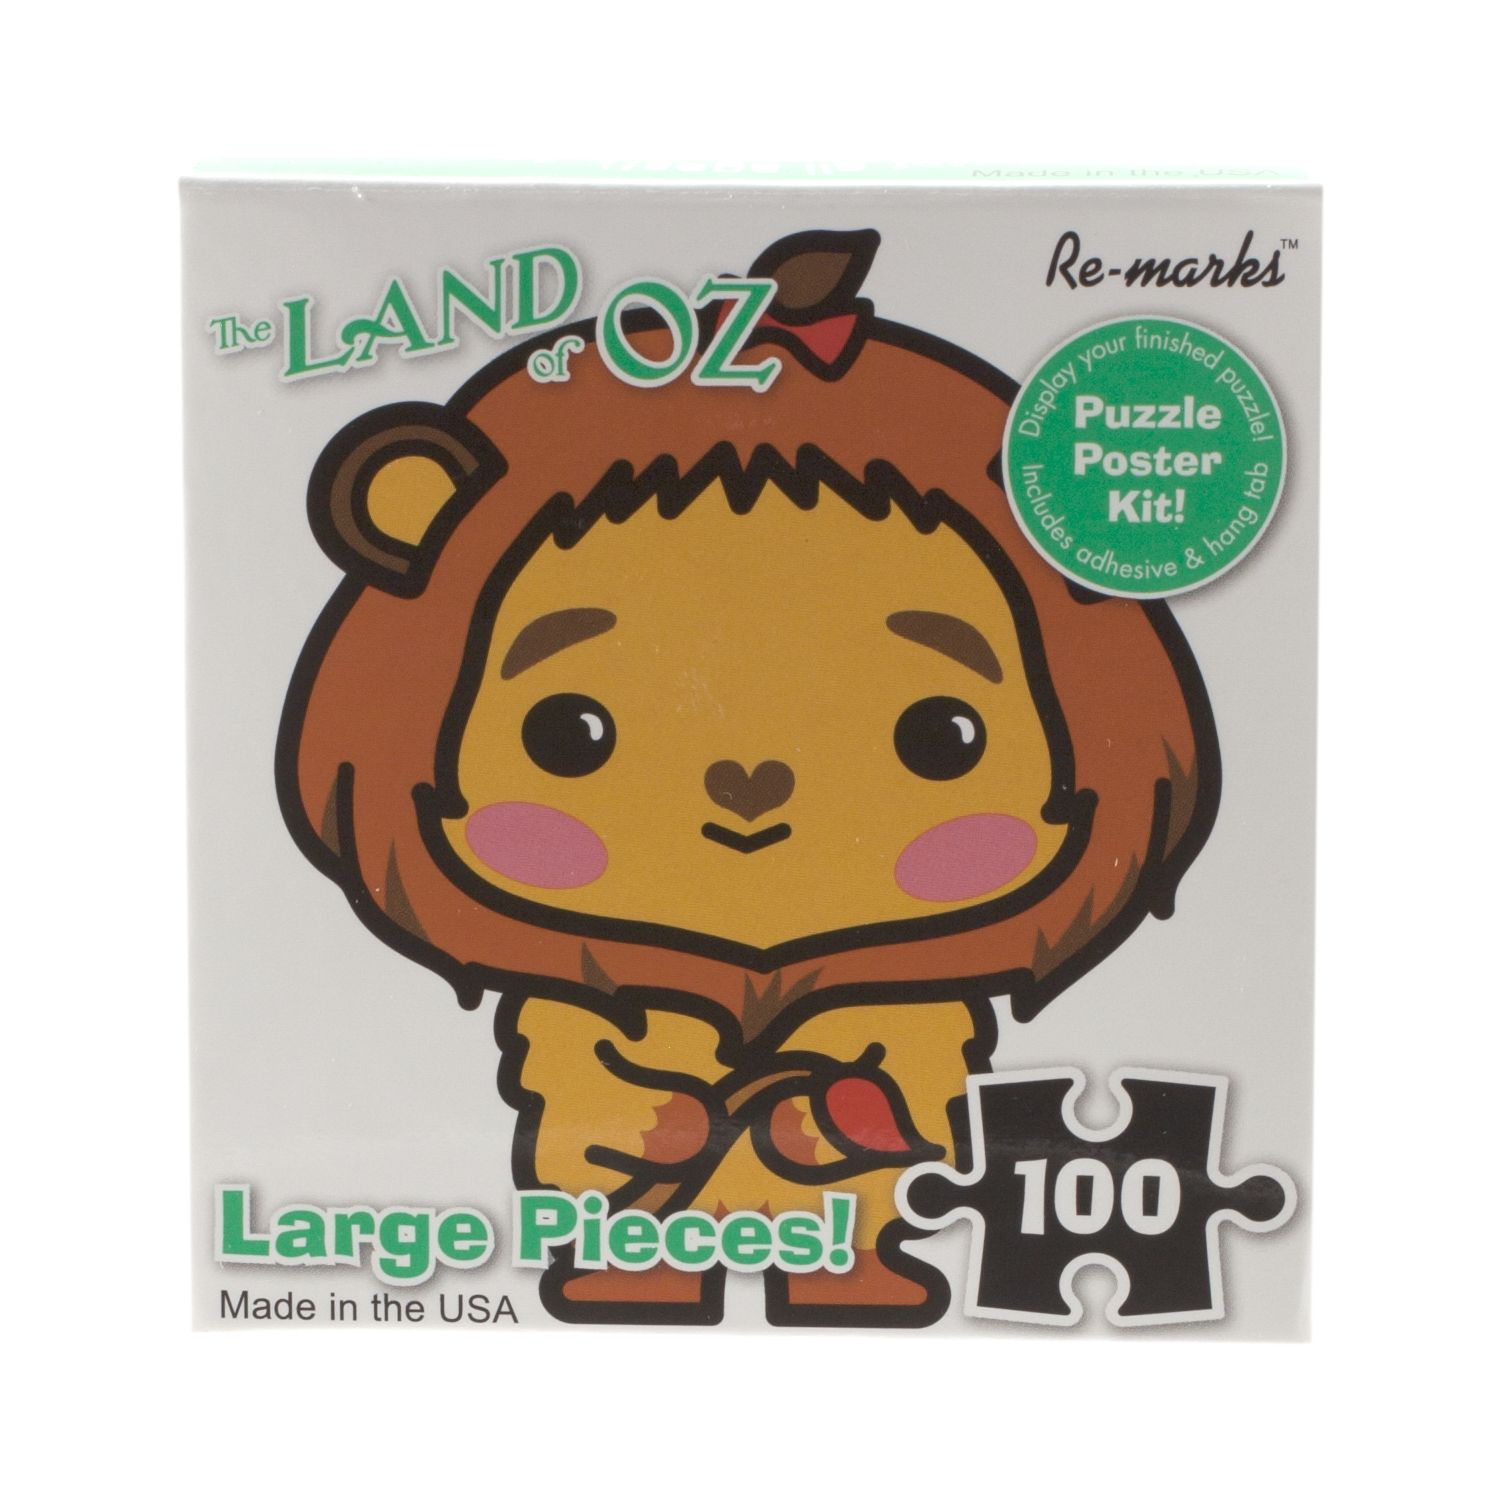 Cowardly Lion Cube 100 Piece Puzzle,19184